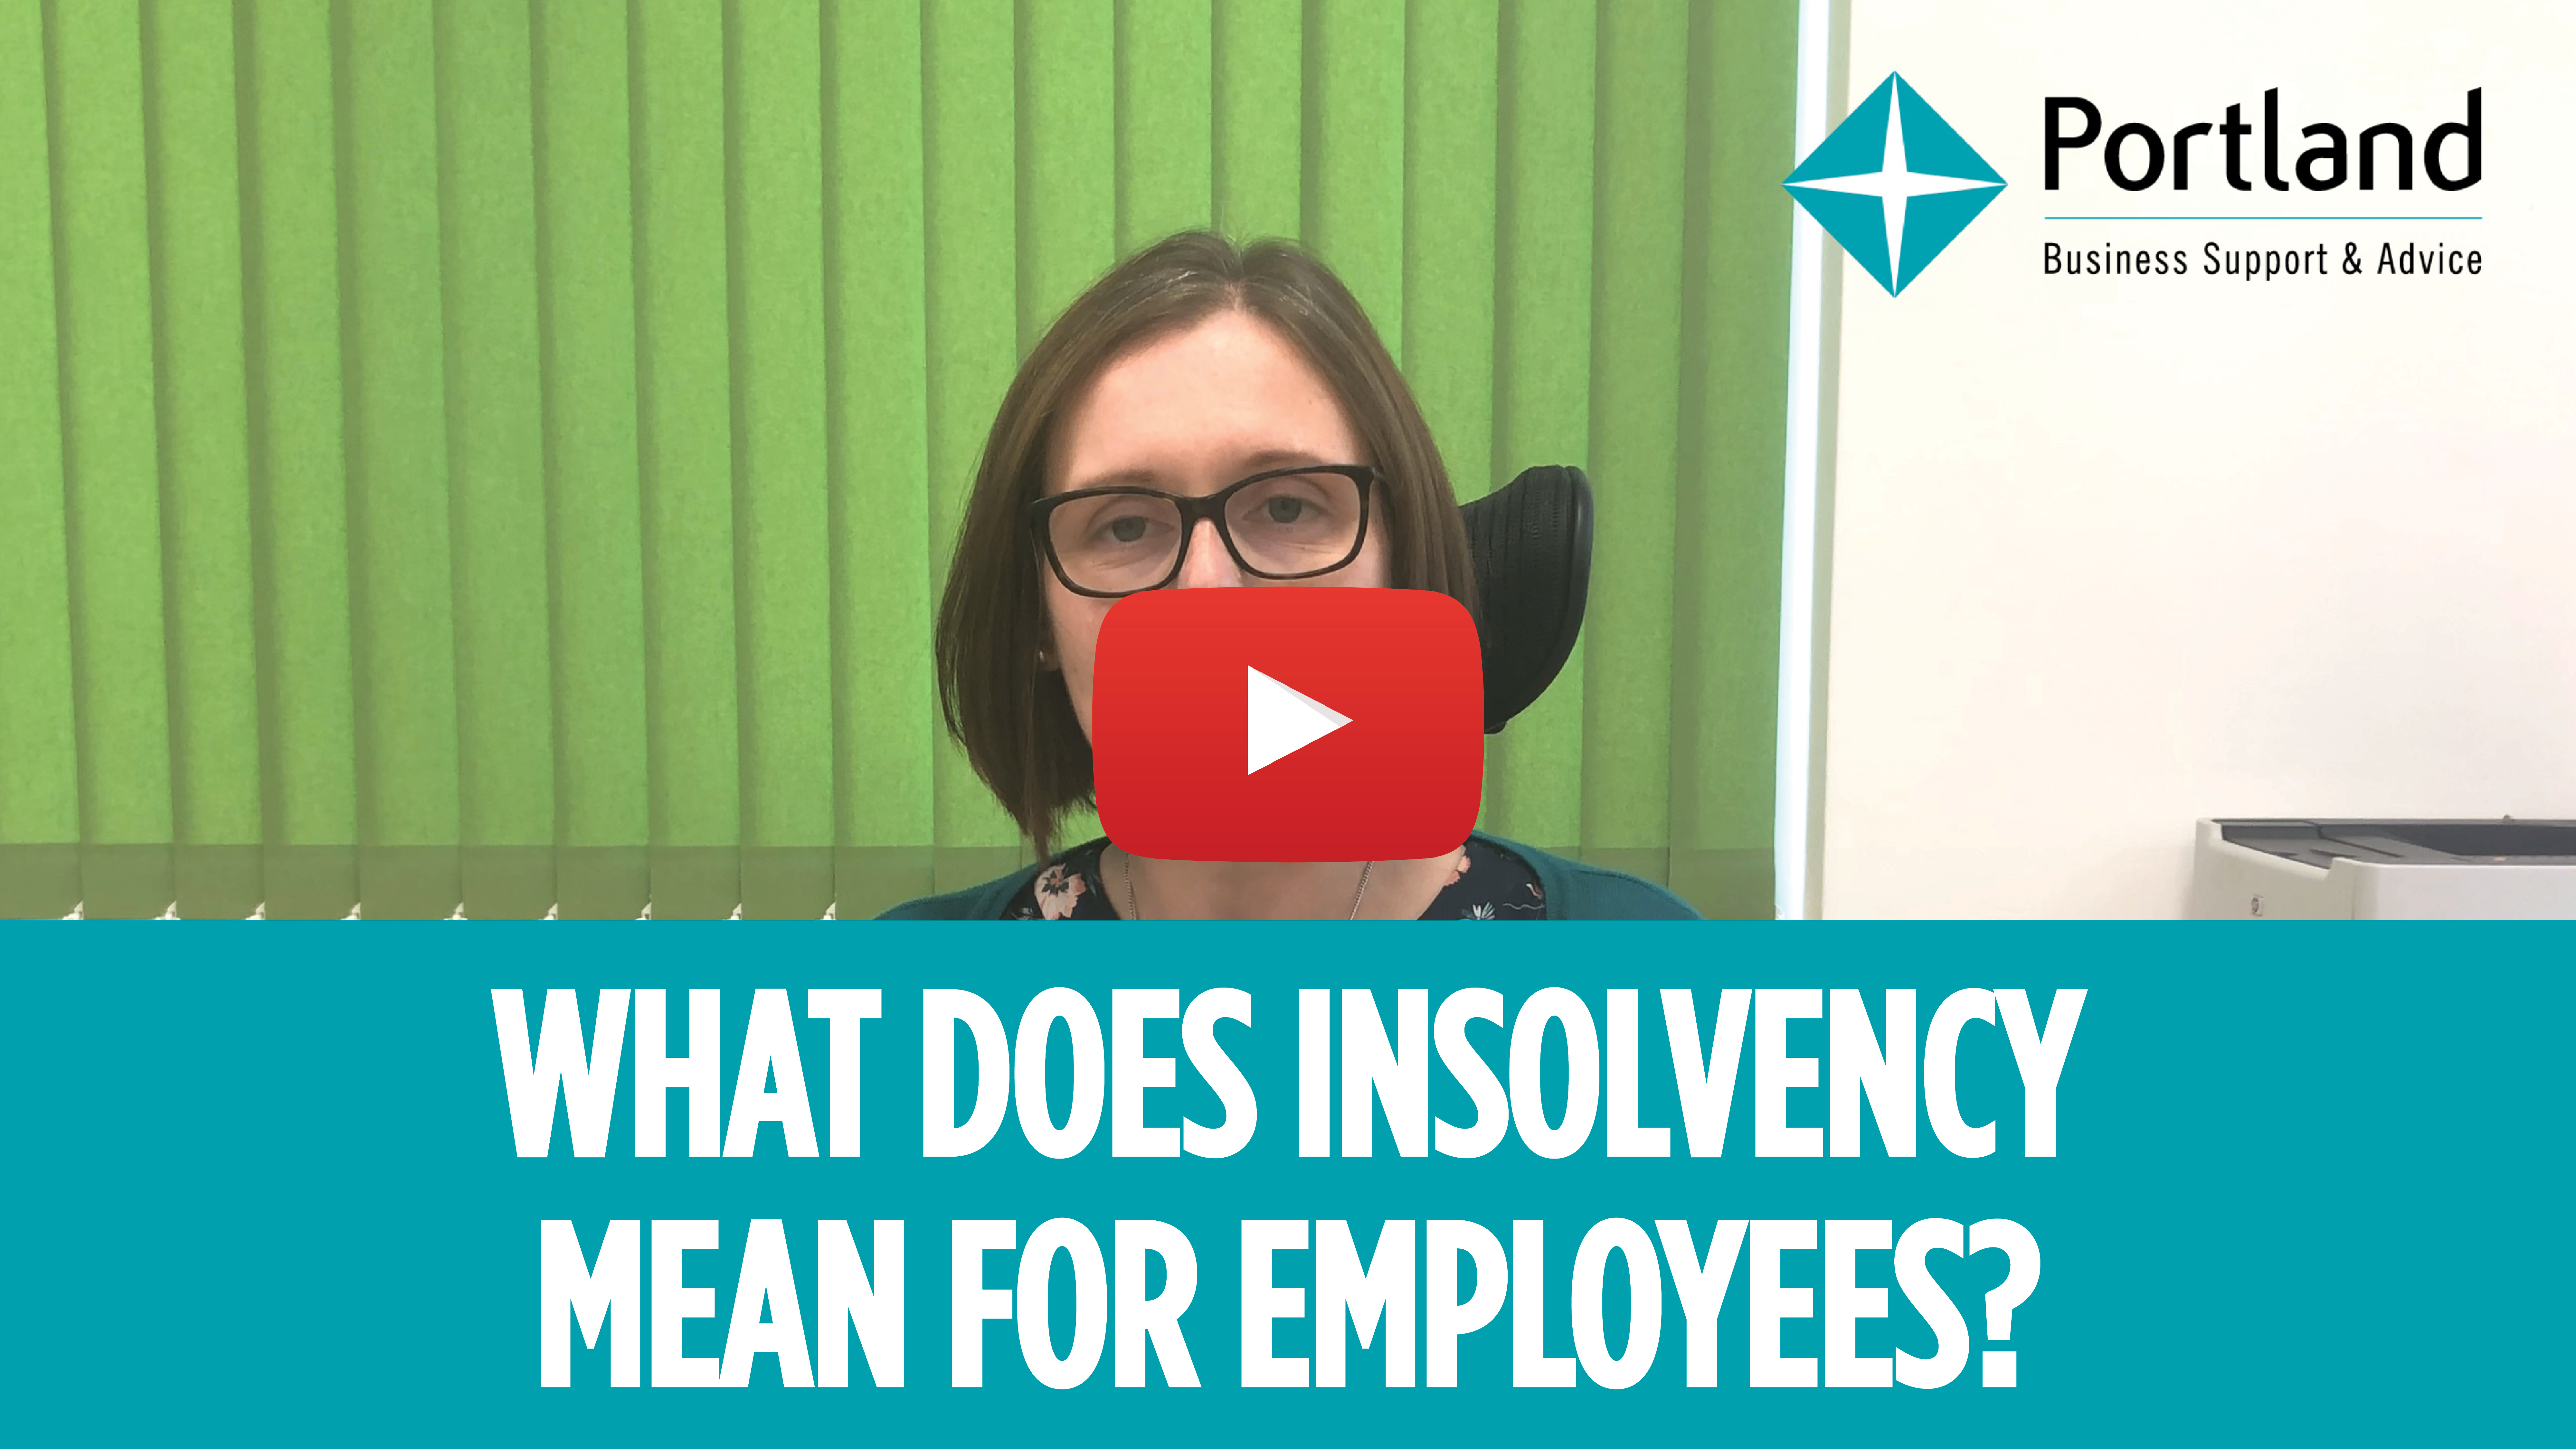 What does insolvency mean for employees